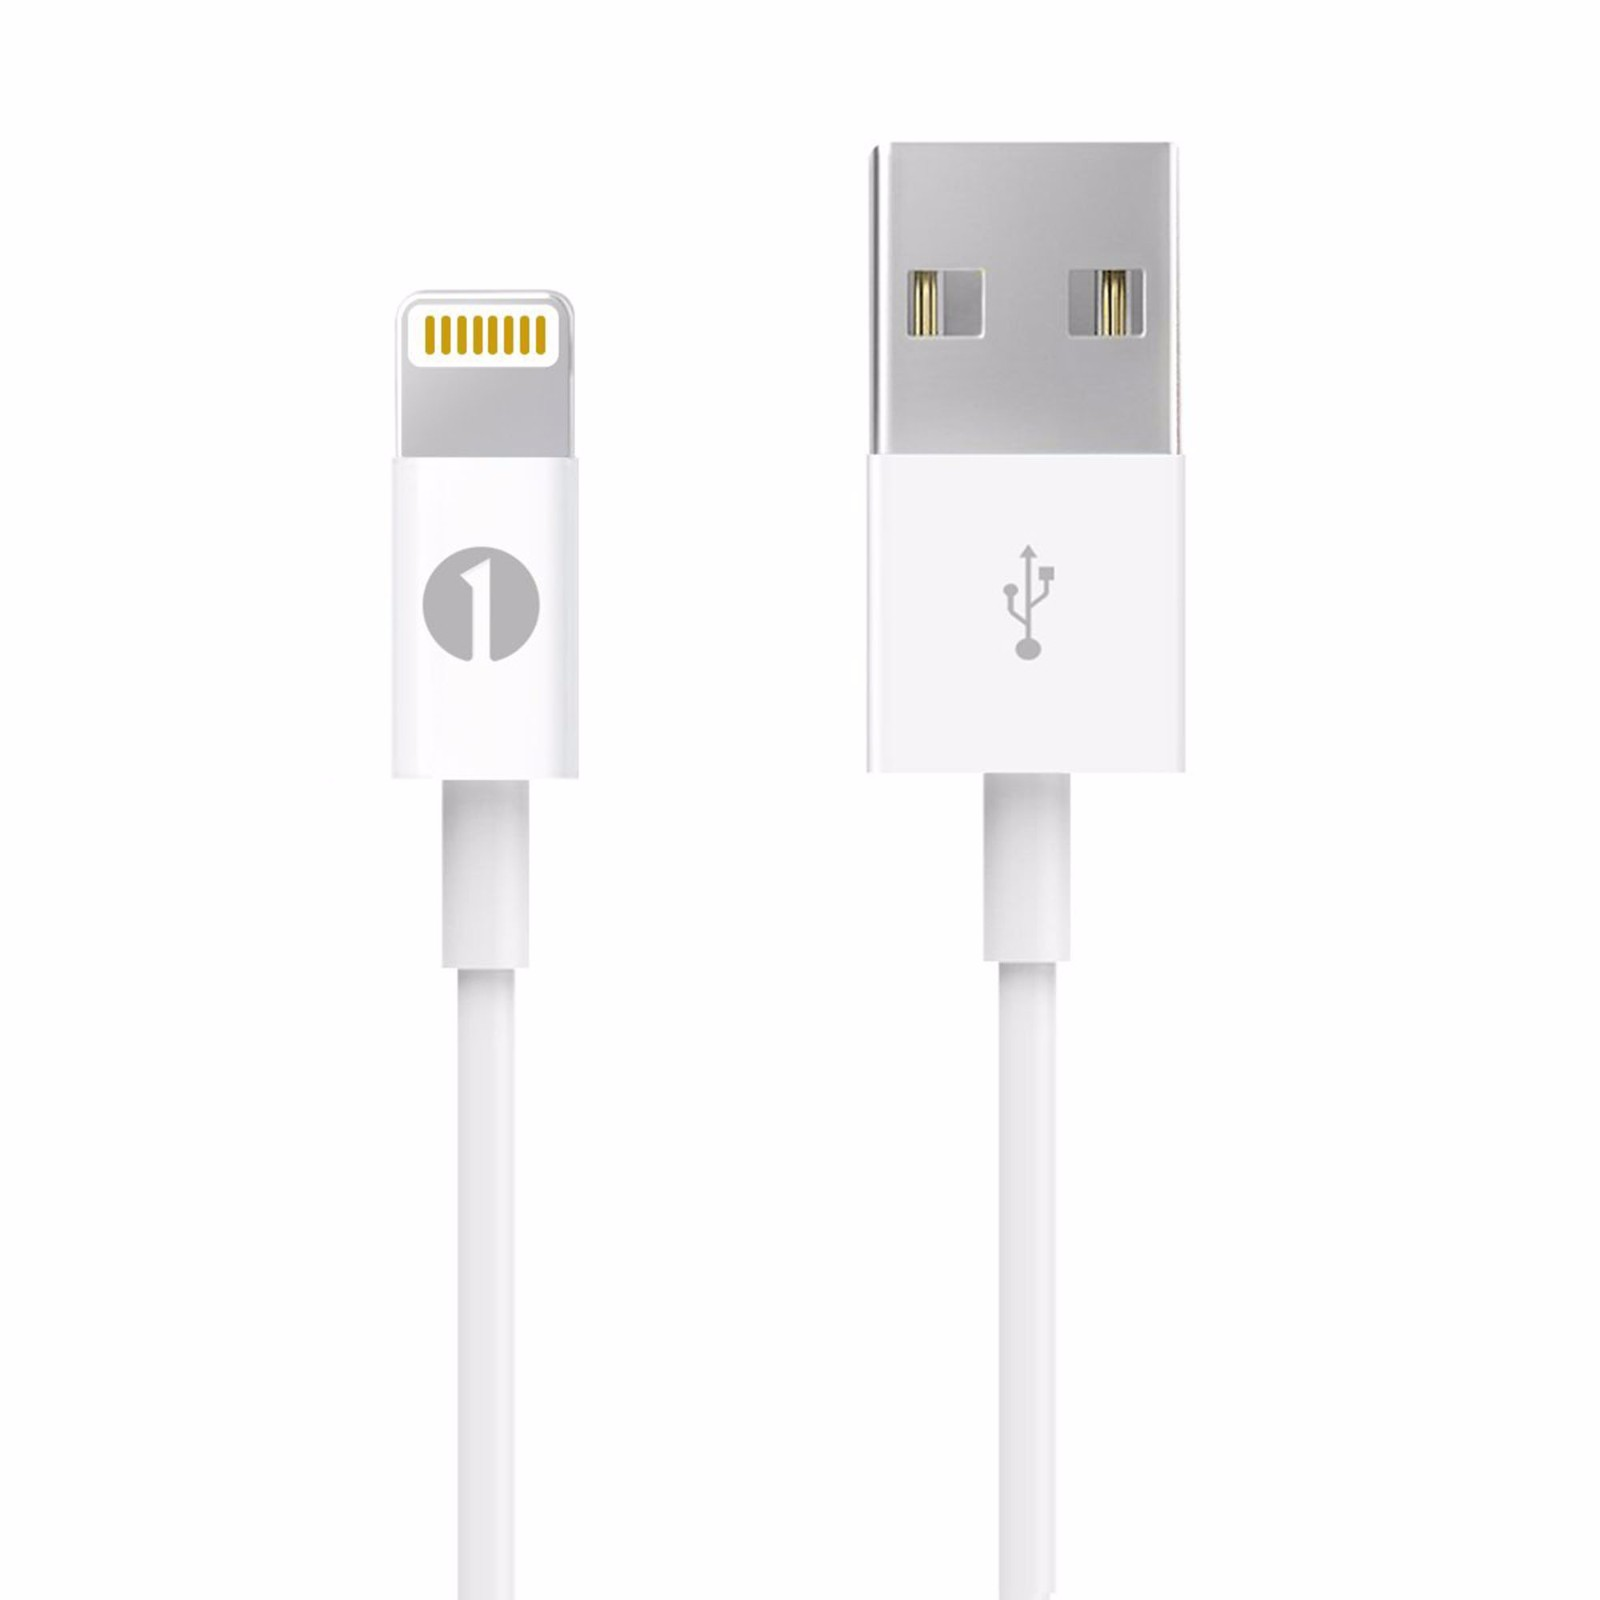 Lightning to USB Cable 6ft (1.8 Meter) for iPhone 7 7 Plu...